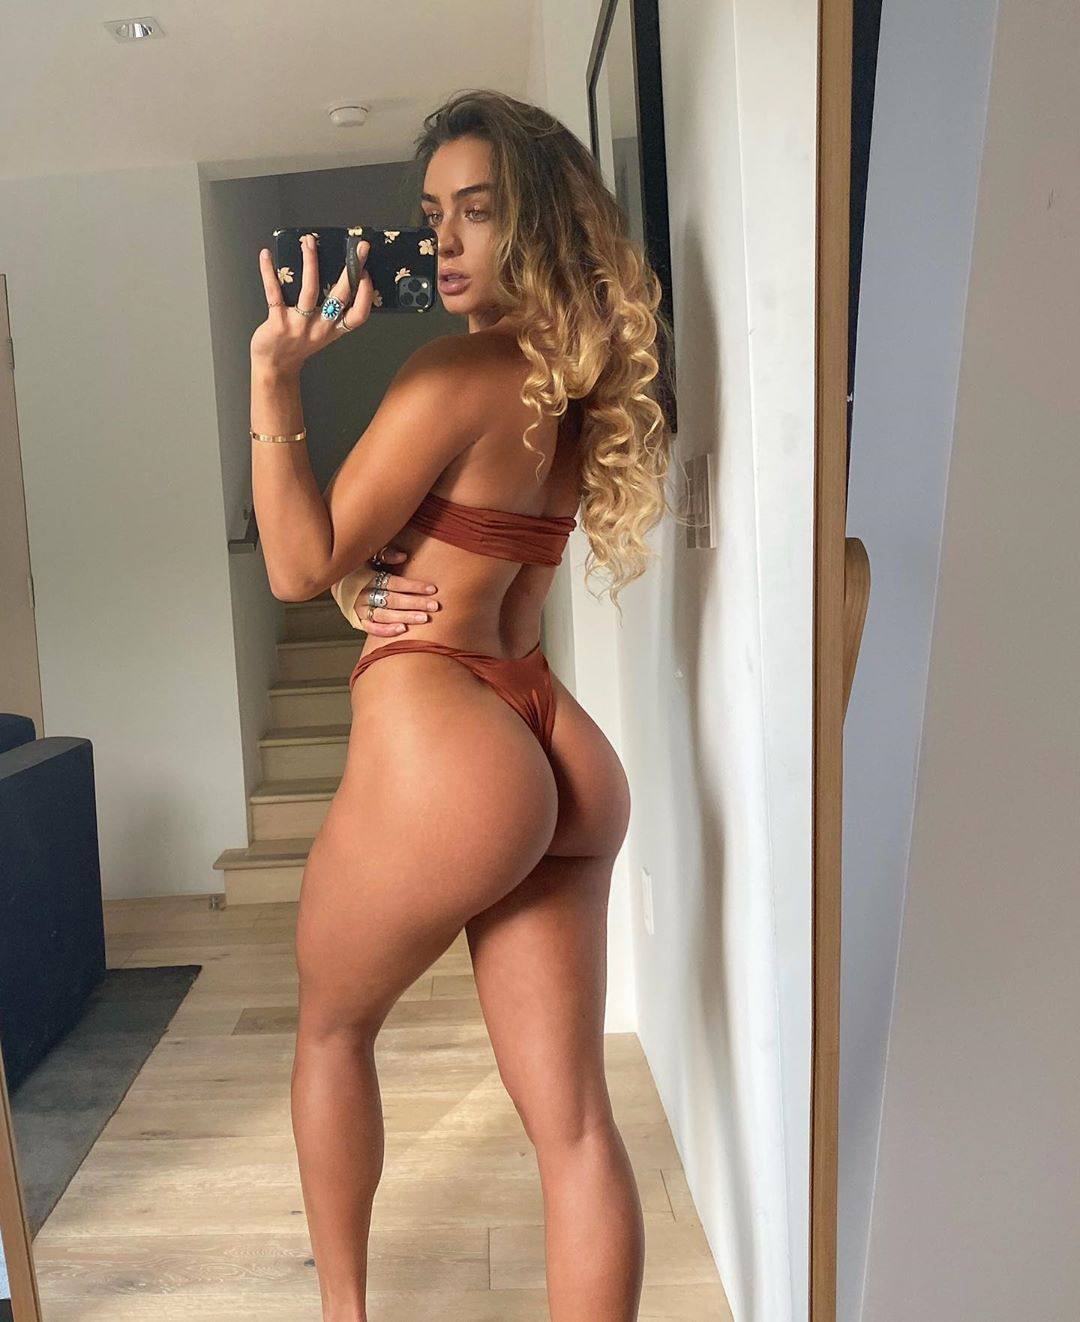 Sommer Ray – Beautiful Body And Great Ass In Sexy Selfies 0005